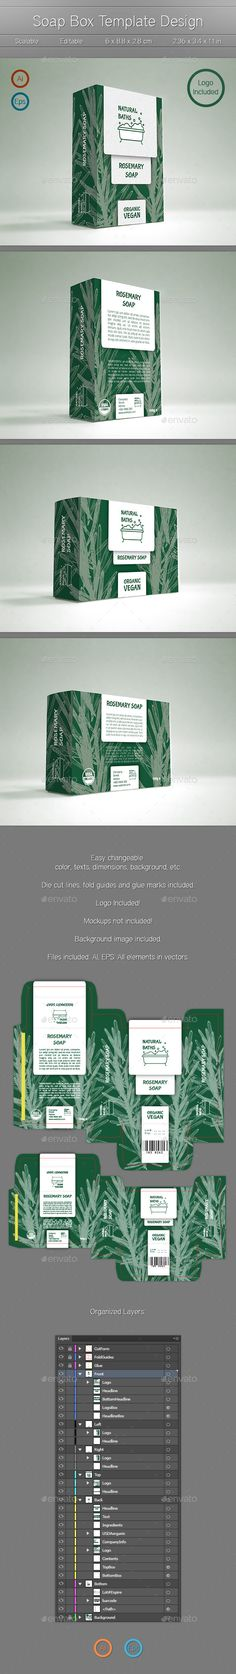 Soap Box Design - Packaging Print Templates